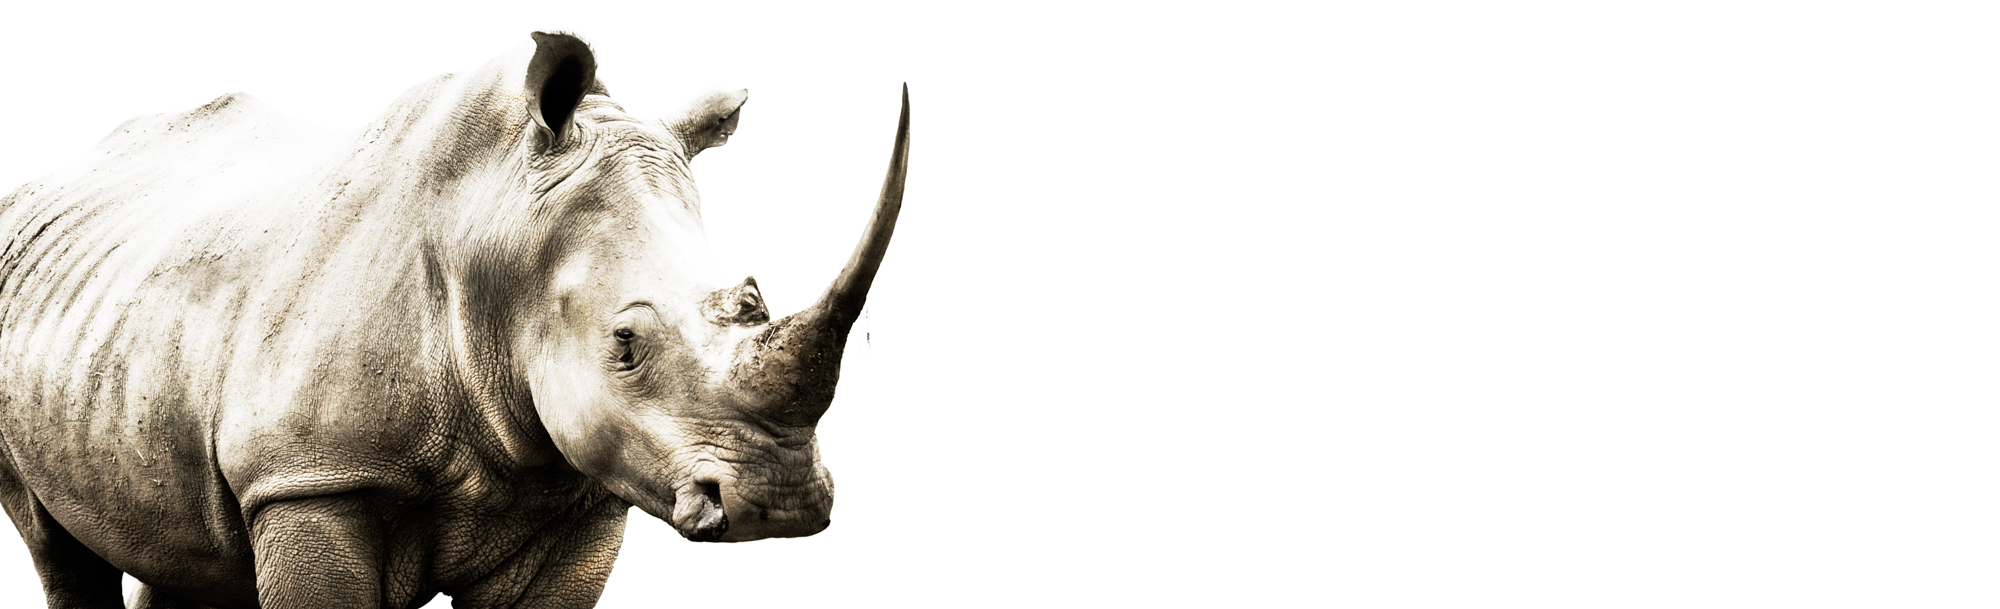 Colour photography of a white rhino against a white background